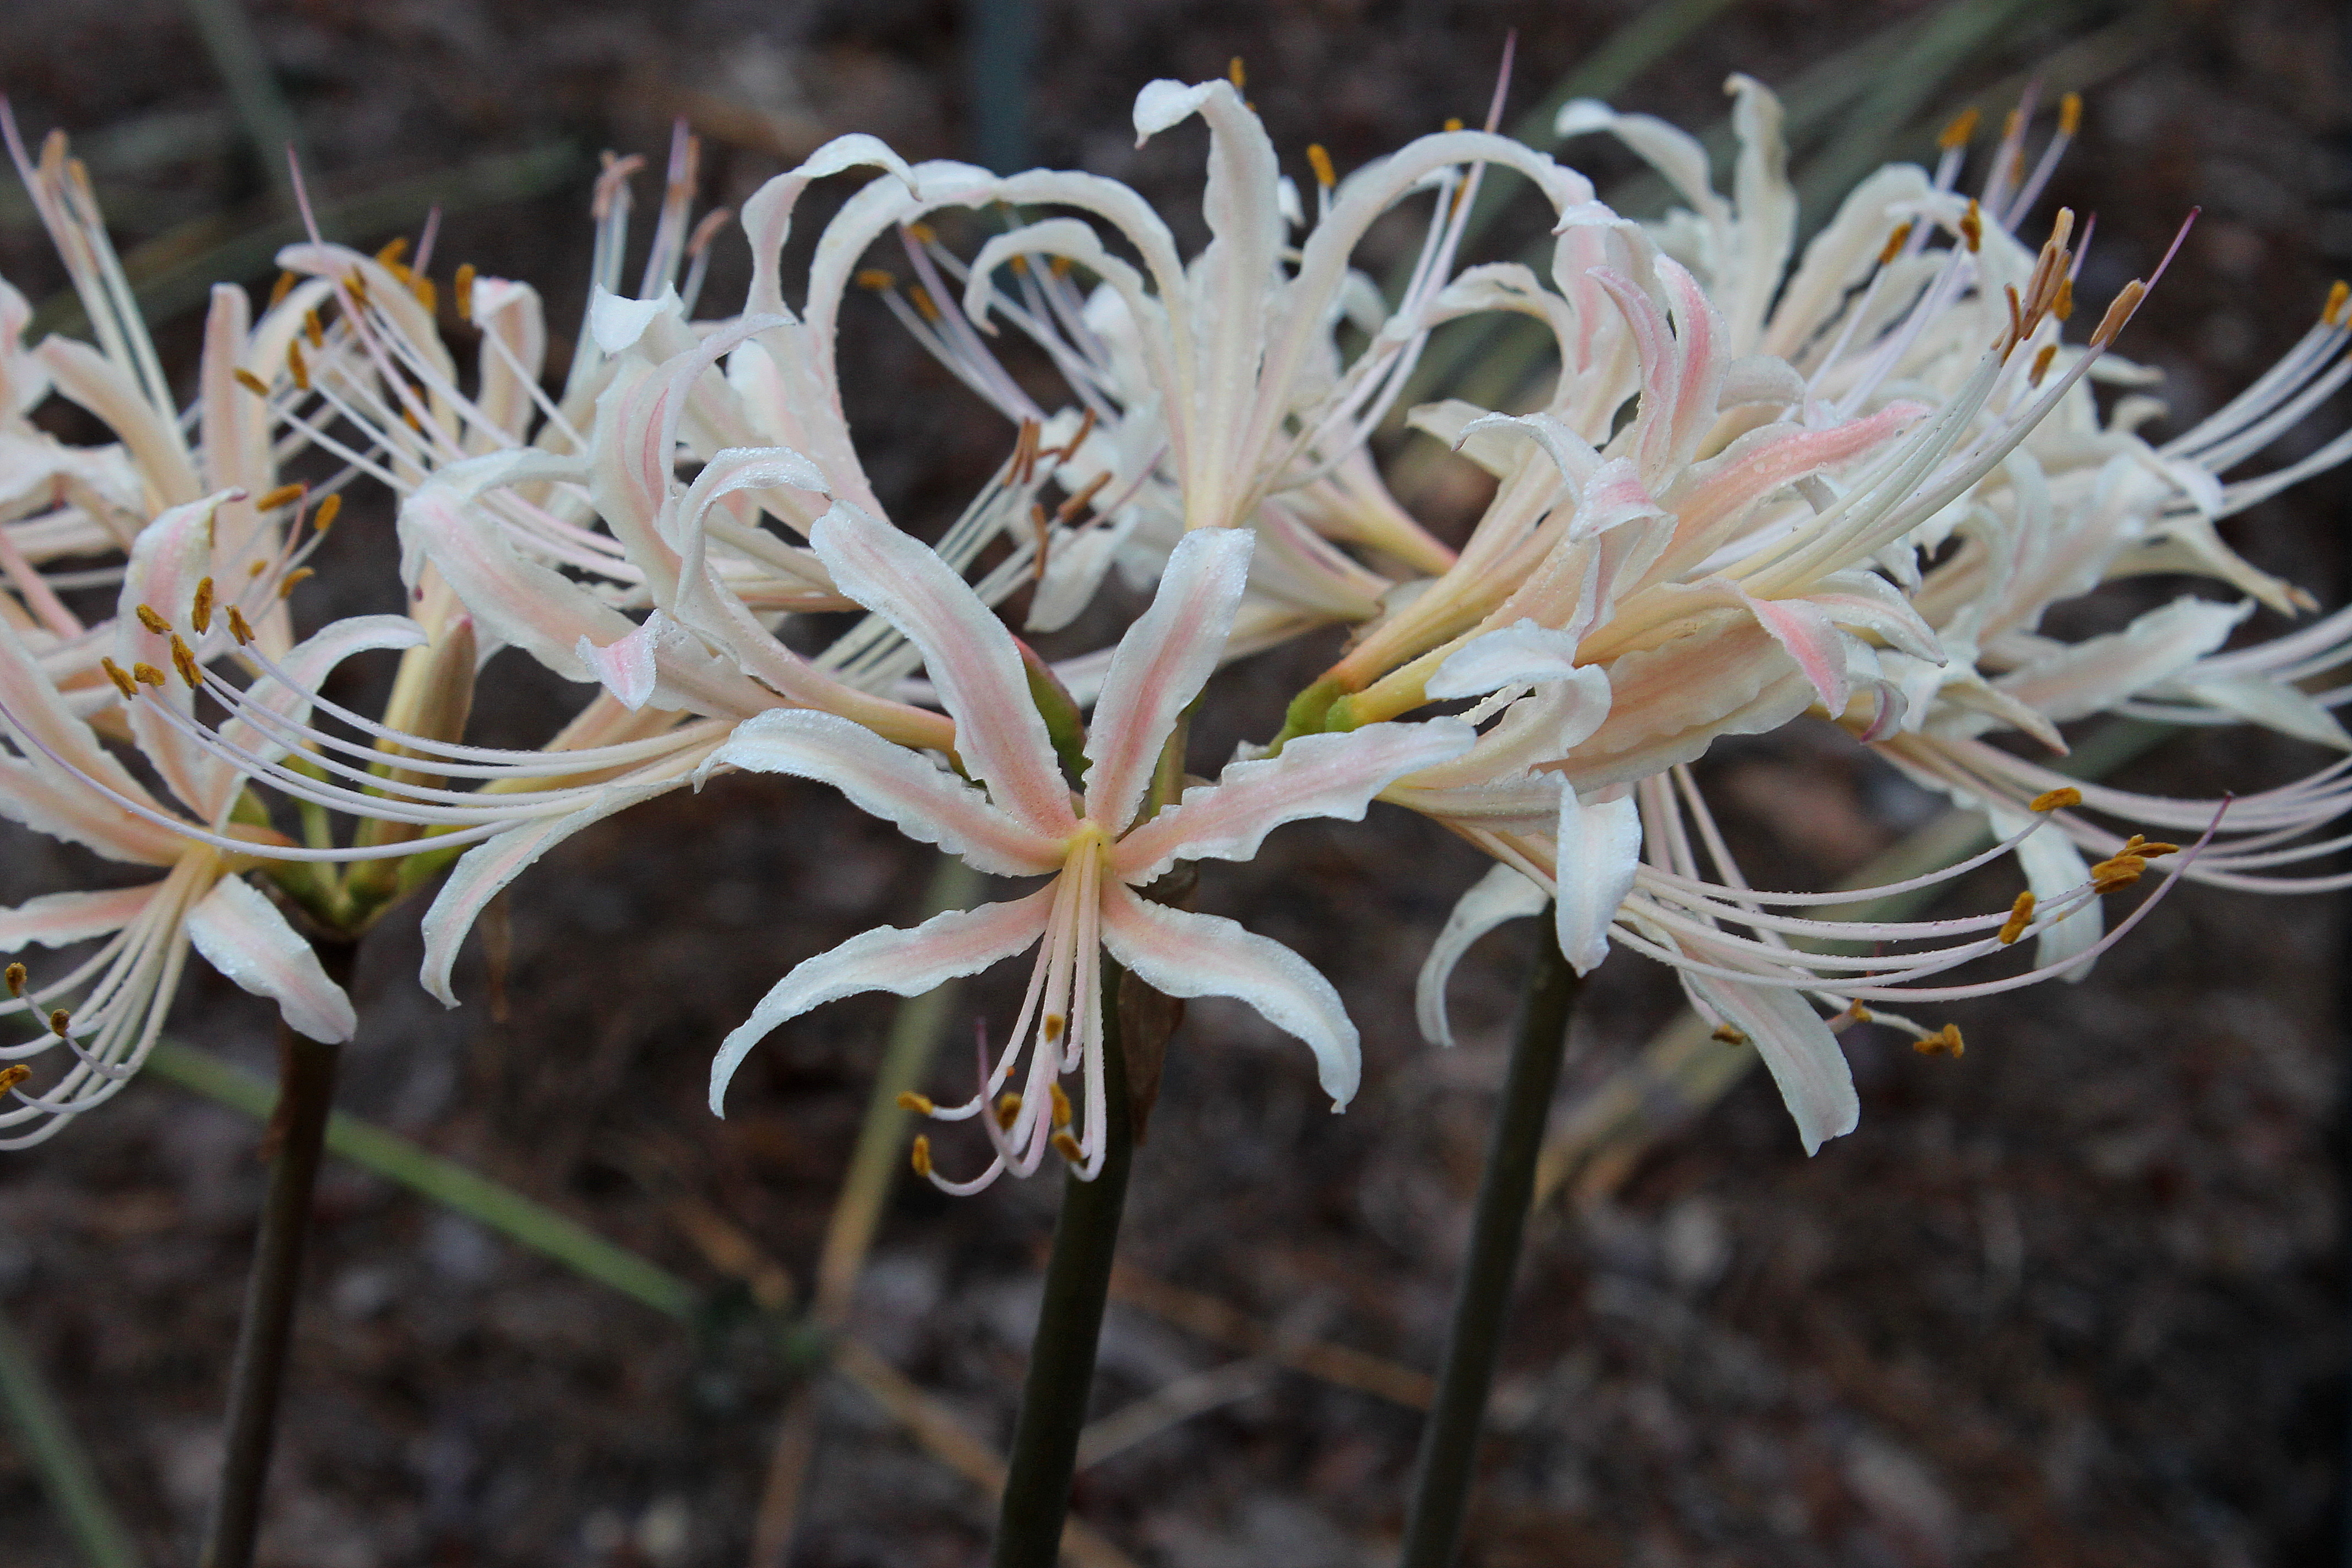 Lycoris x albiflora 'Fall Festival' (aka: PDN015) @ JLBG - A Phil Adams hybrid of Lycoris aurea x radiata, named by JLBG/PDN - maturing flower color